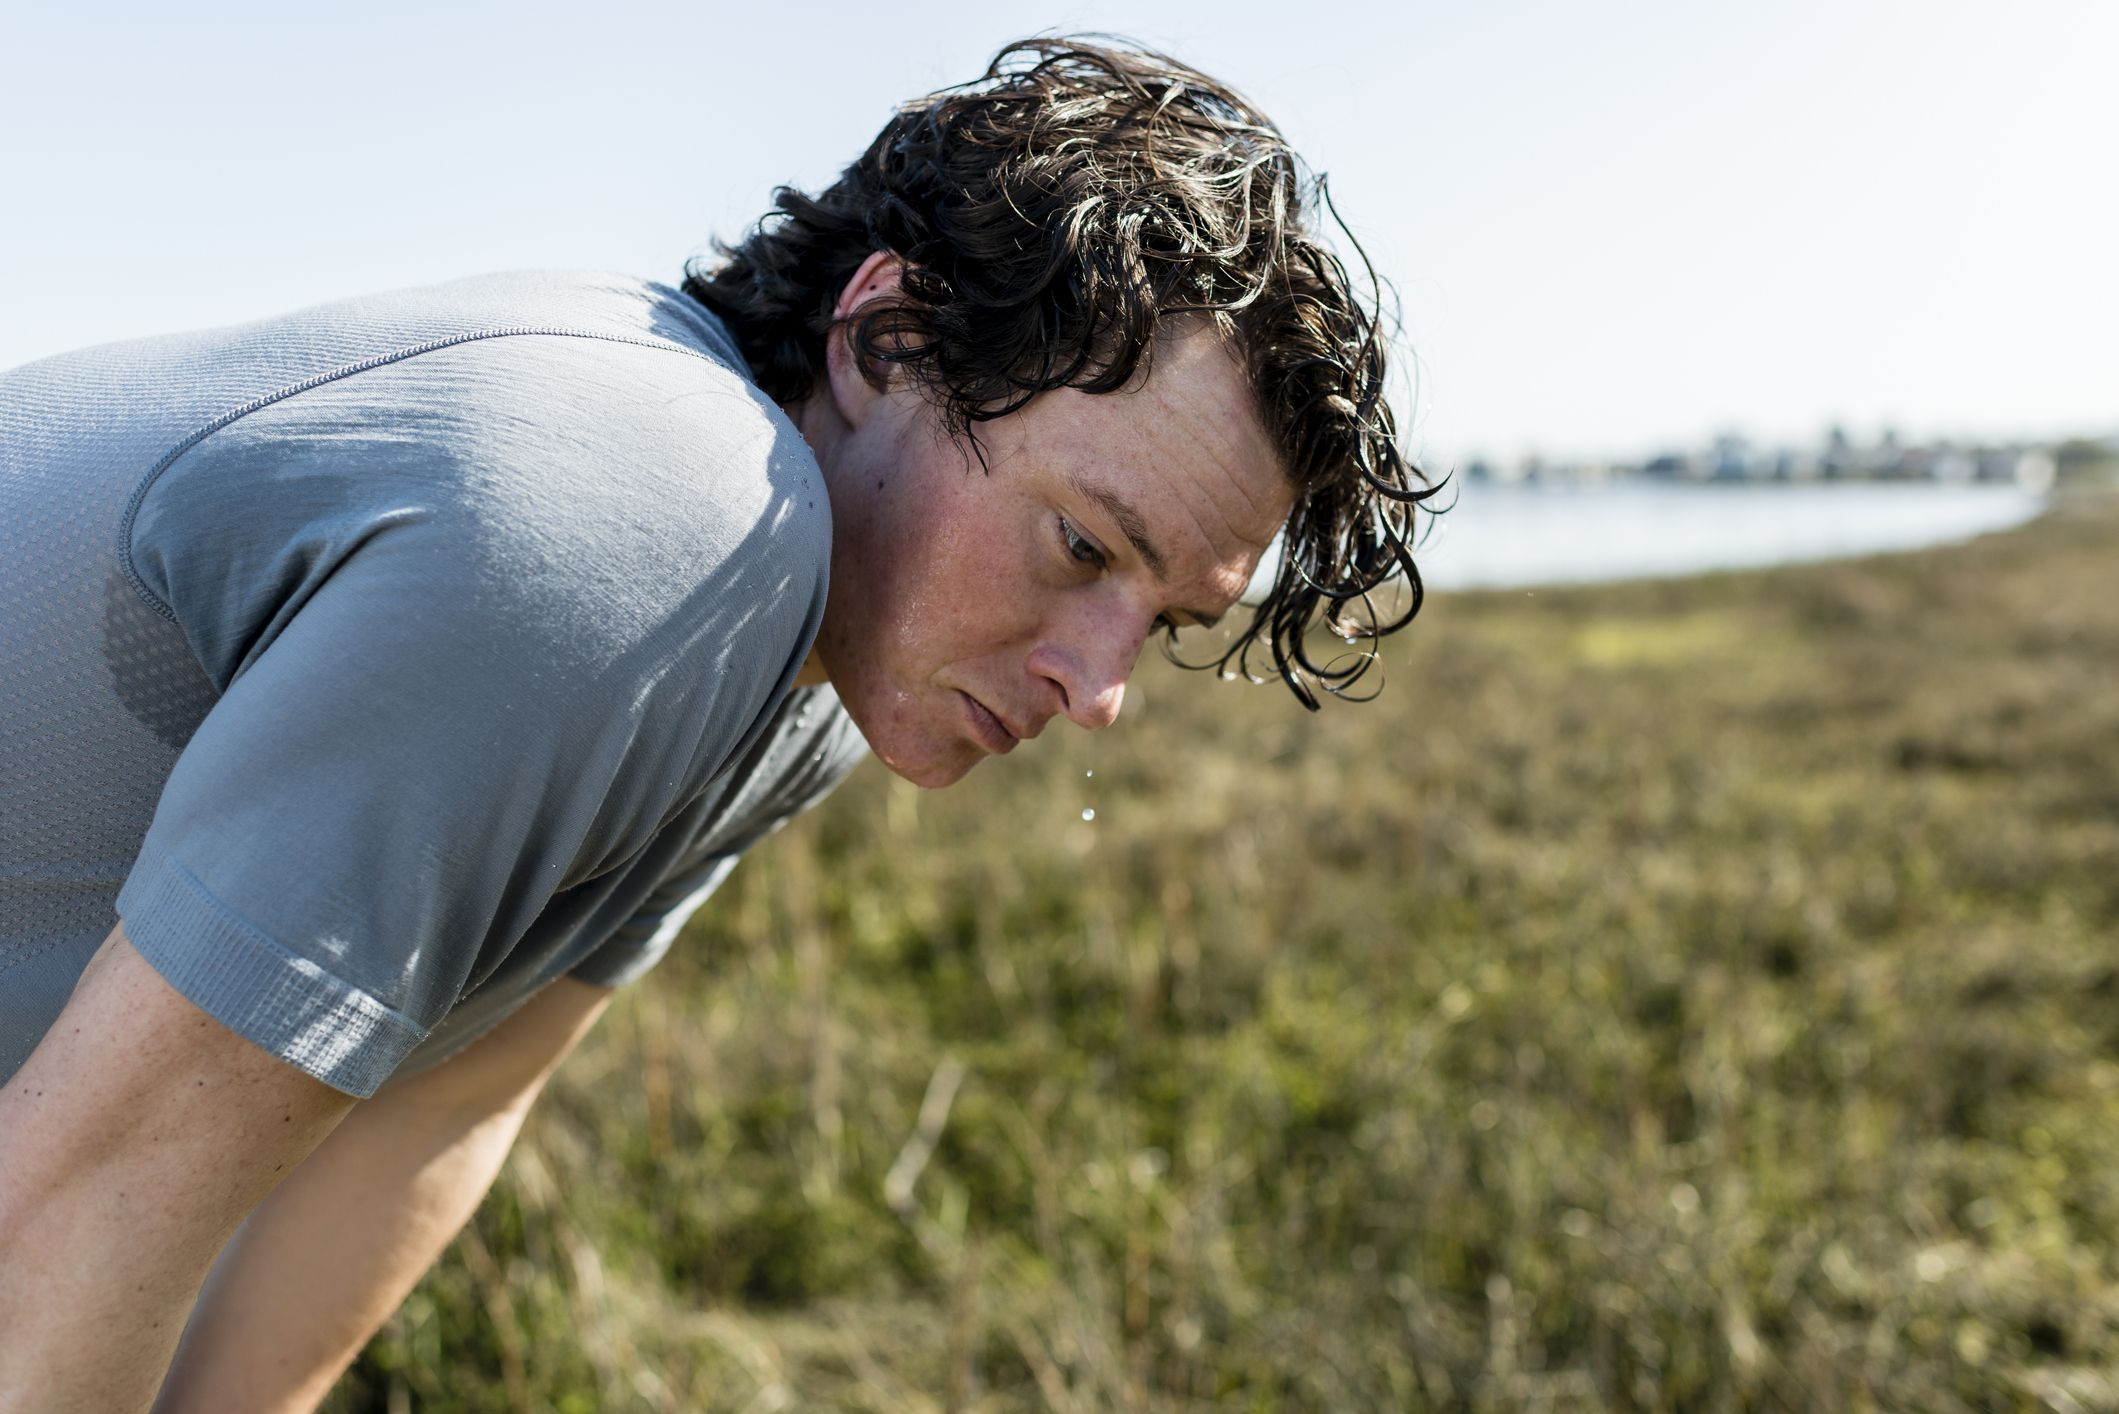 Does Sweating Profusely Mean You Get a Better Workout?